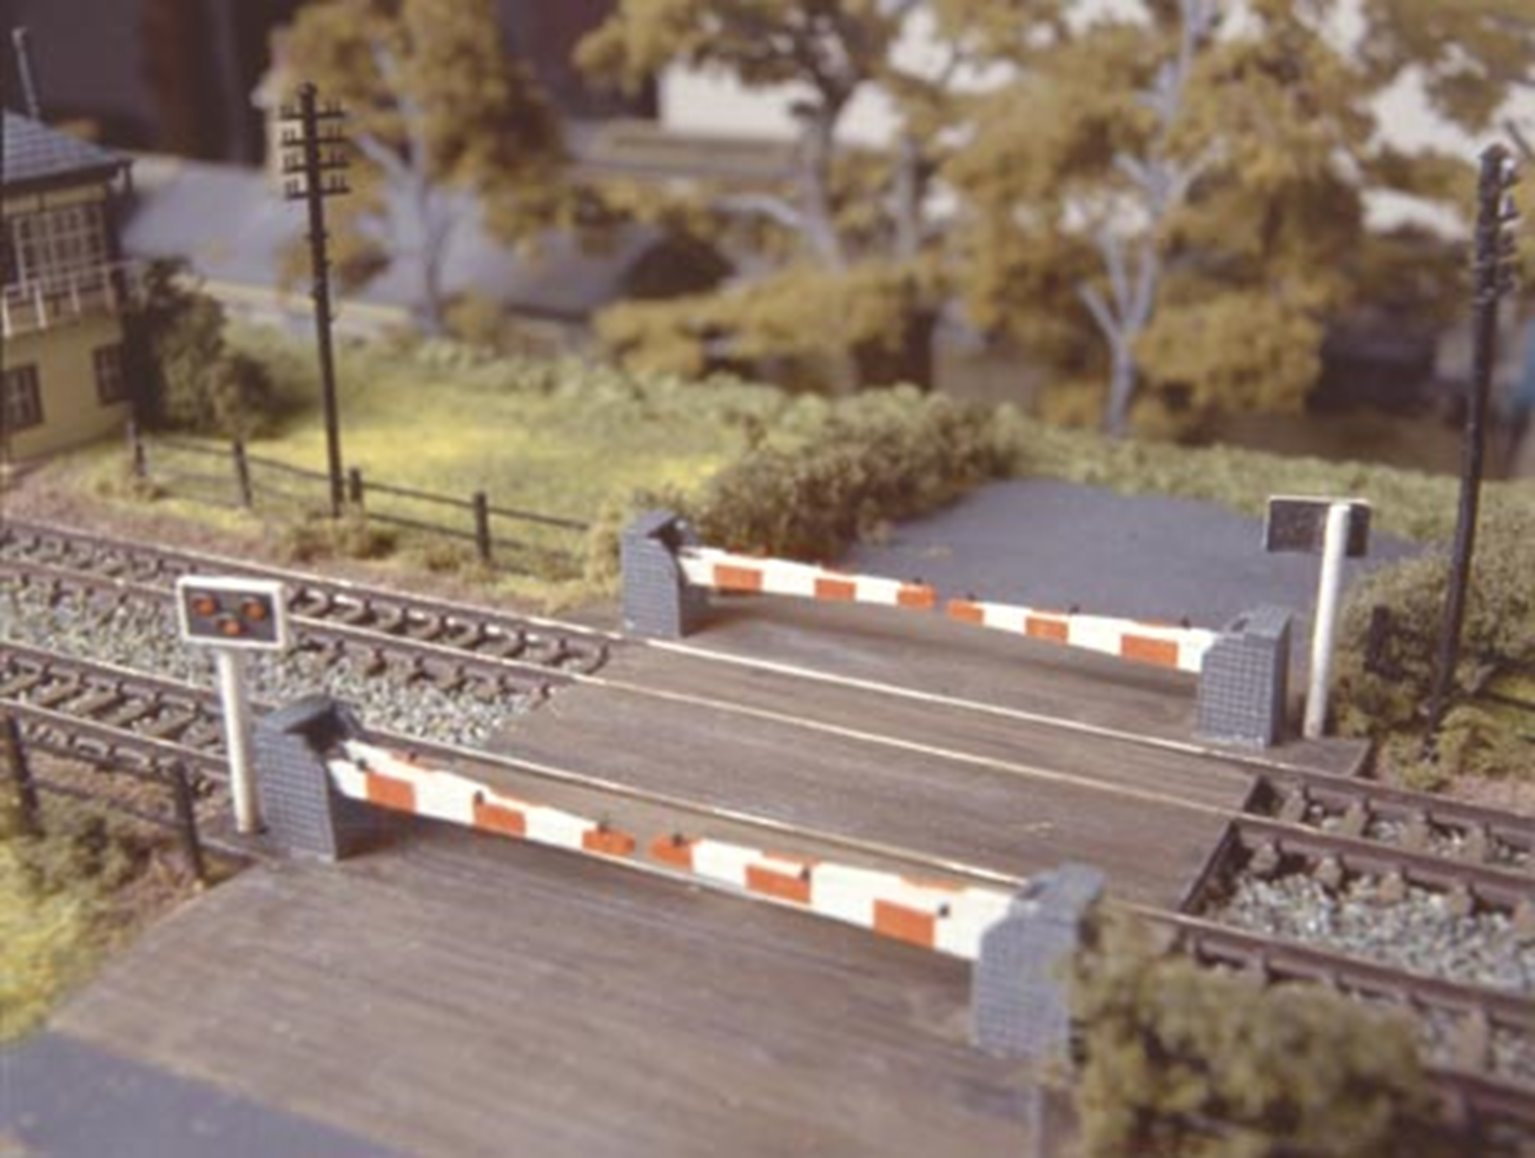 Level Crossing with barriers